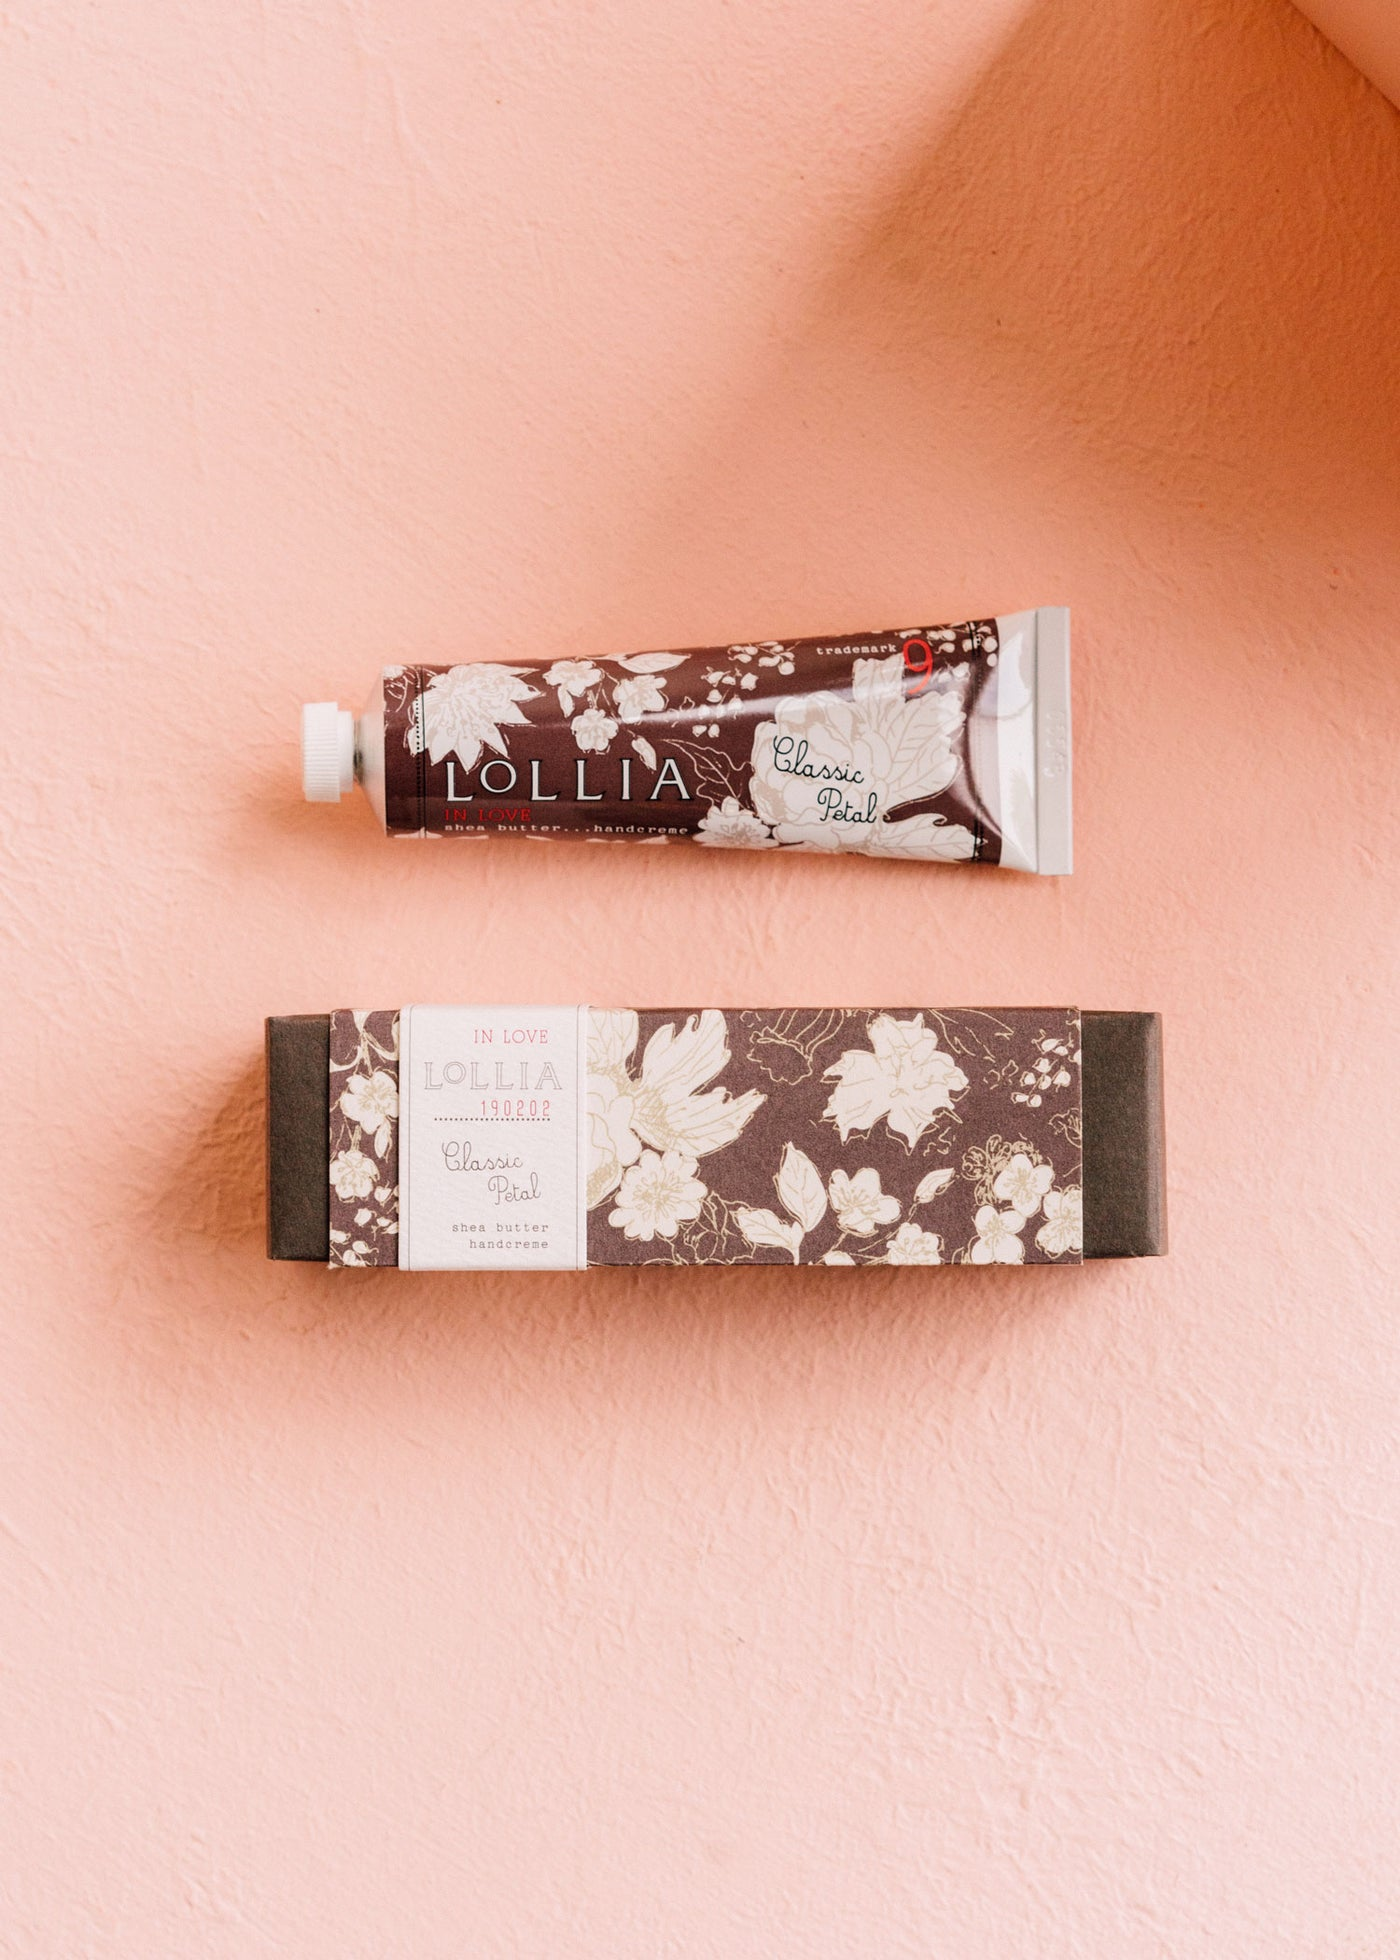 In Love Travel-Size Handcreme